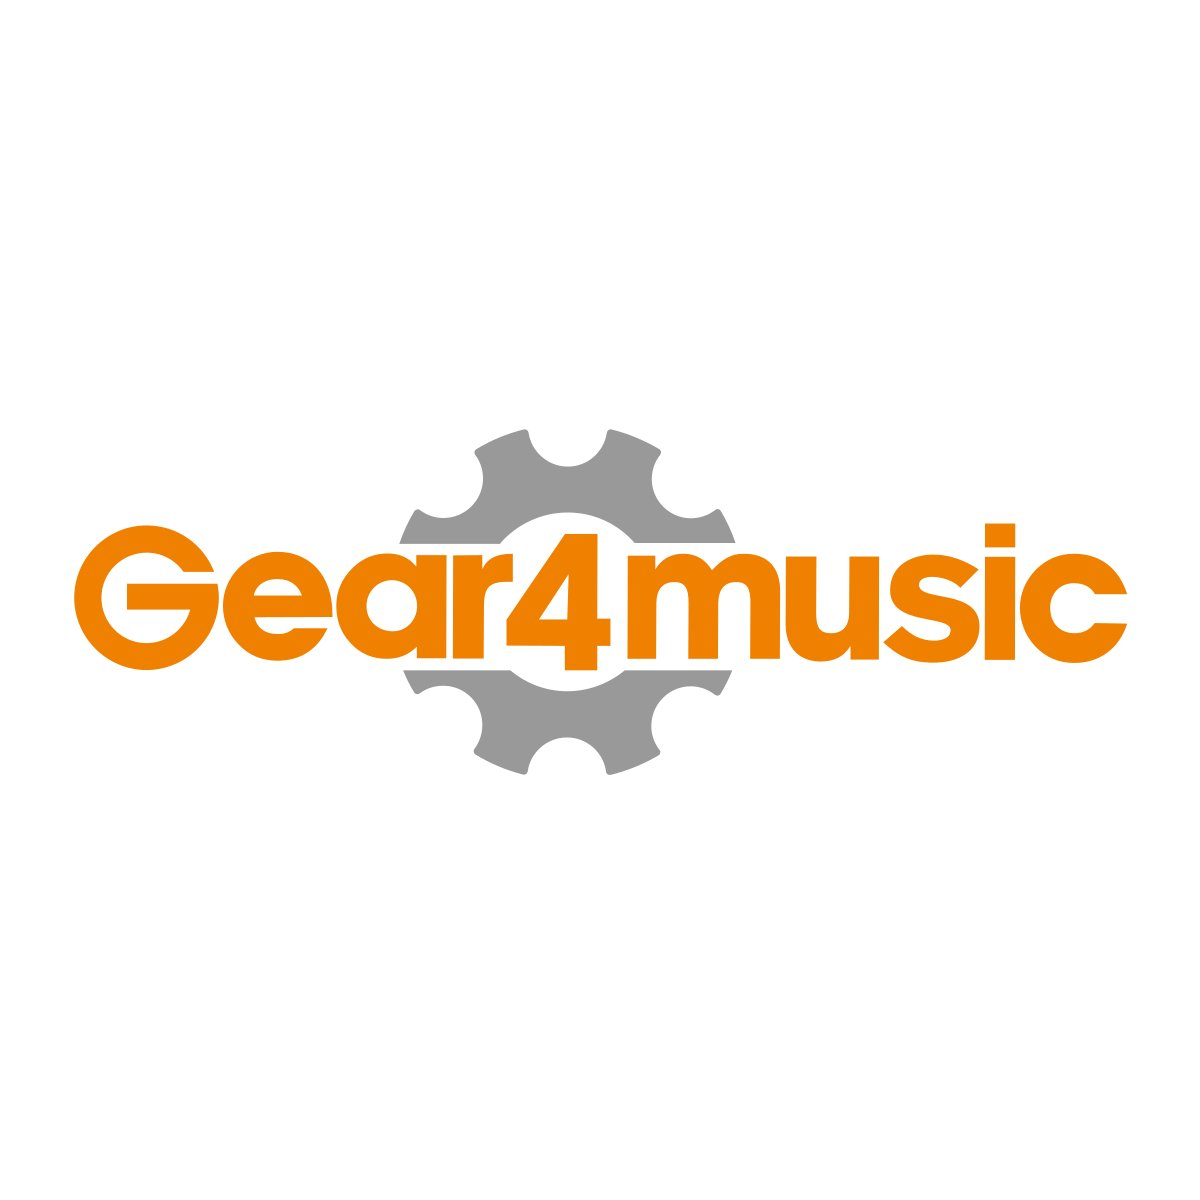 Komplet Vokal Performance Pakke - Gear4music Exclusive!